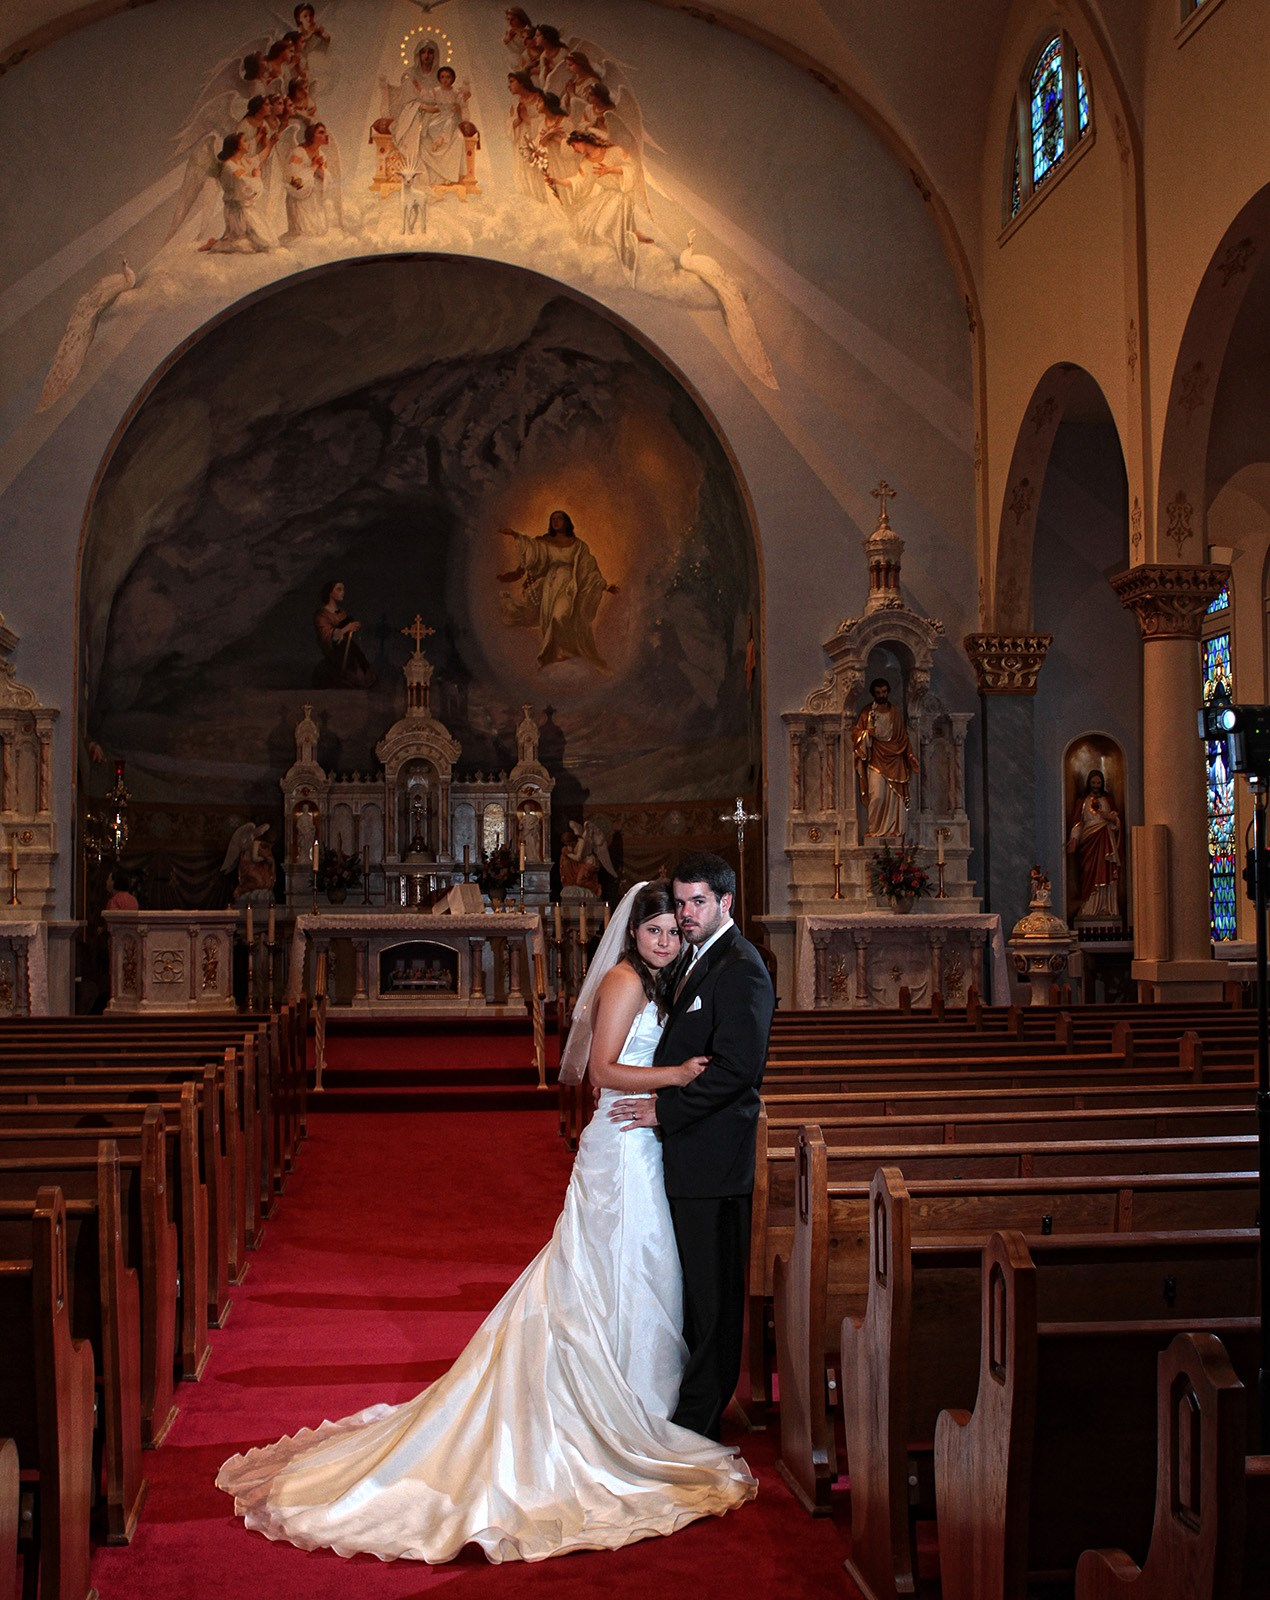 Bride and Groom in Church 1.jpg